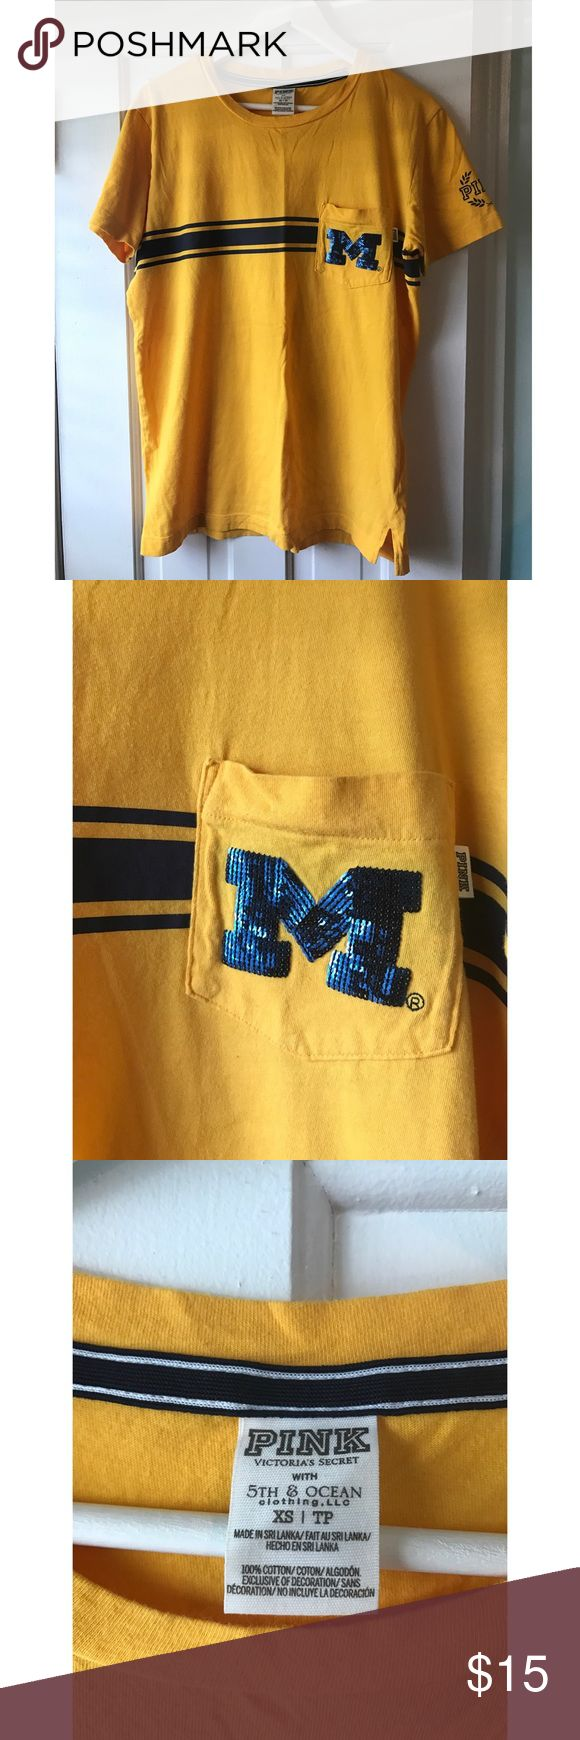 "PINK University of Michigan (U of M) Bling Shirt This is a University of Michigan Shirt by the brand PINK. It features a Bling ""M"" on the front. This shirt is in great condition. Perfect for game day. PINK Tops Tees - Short Sleeve"